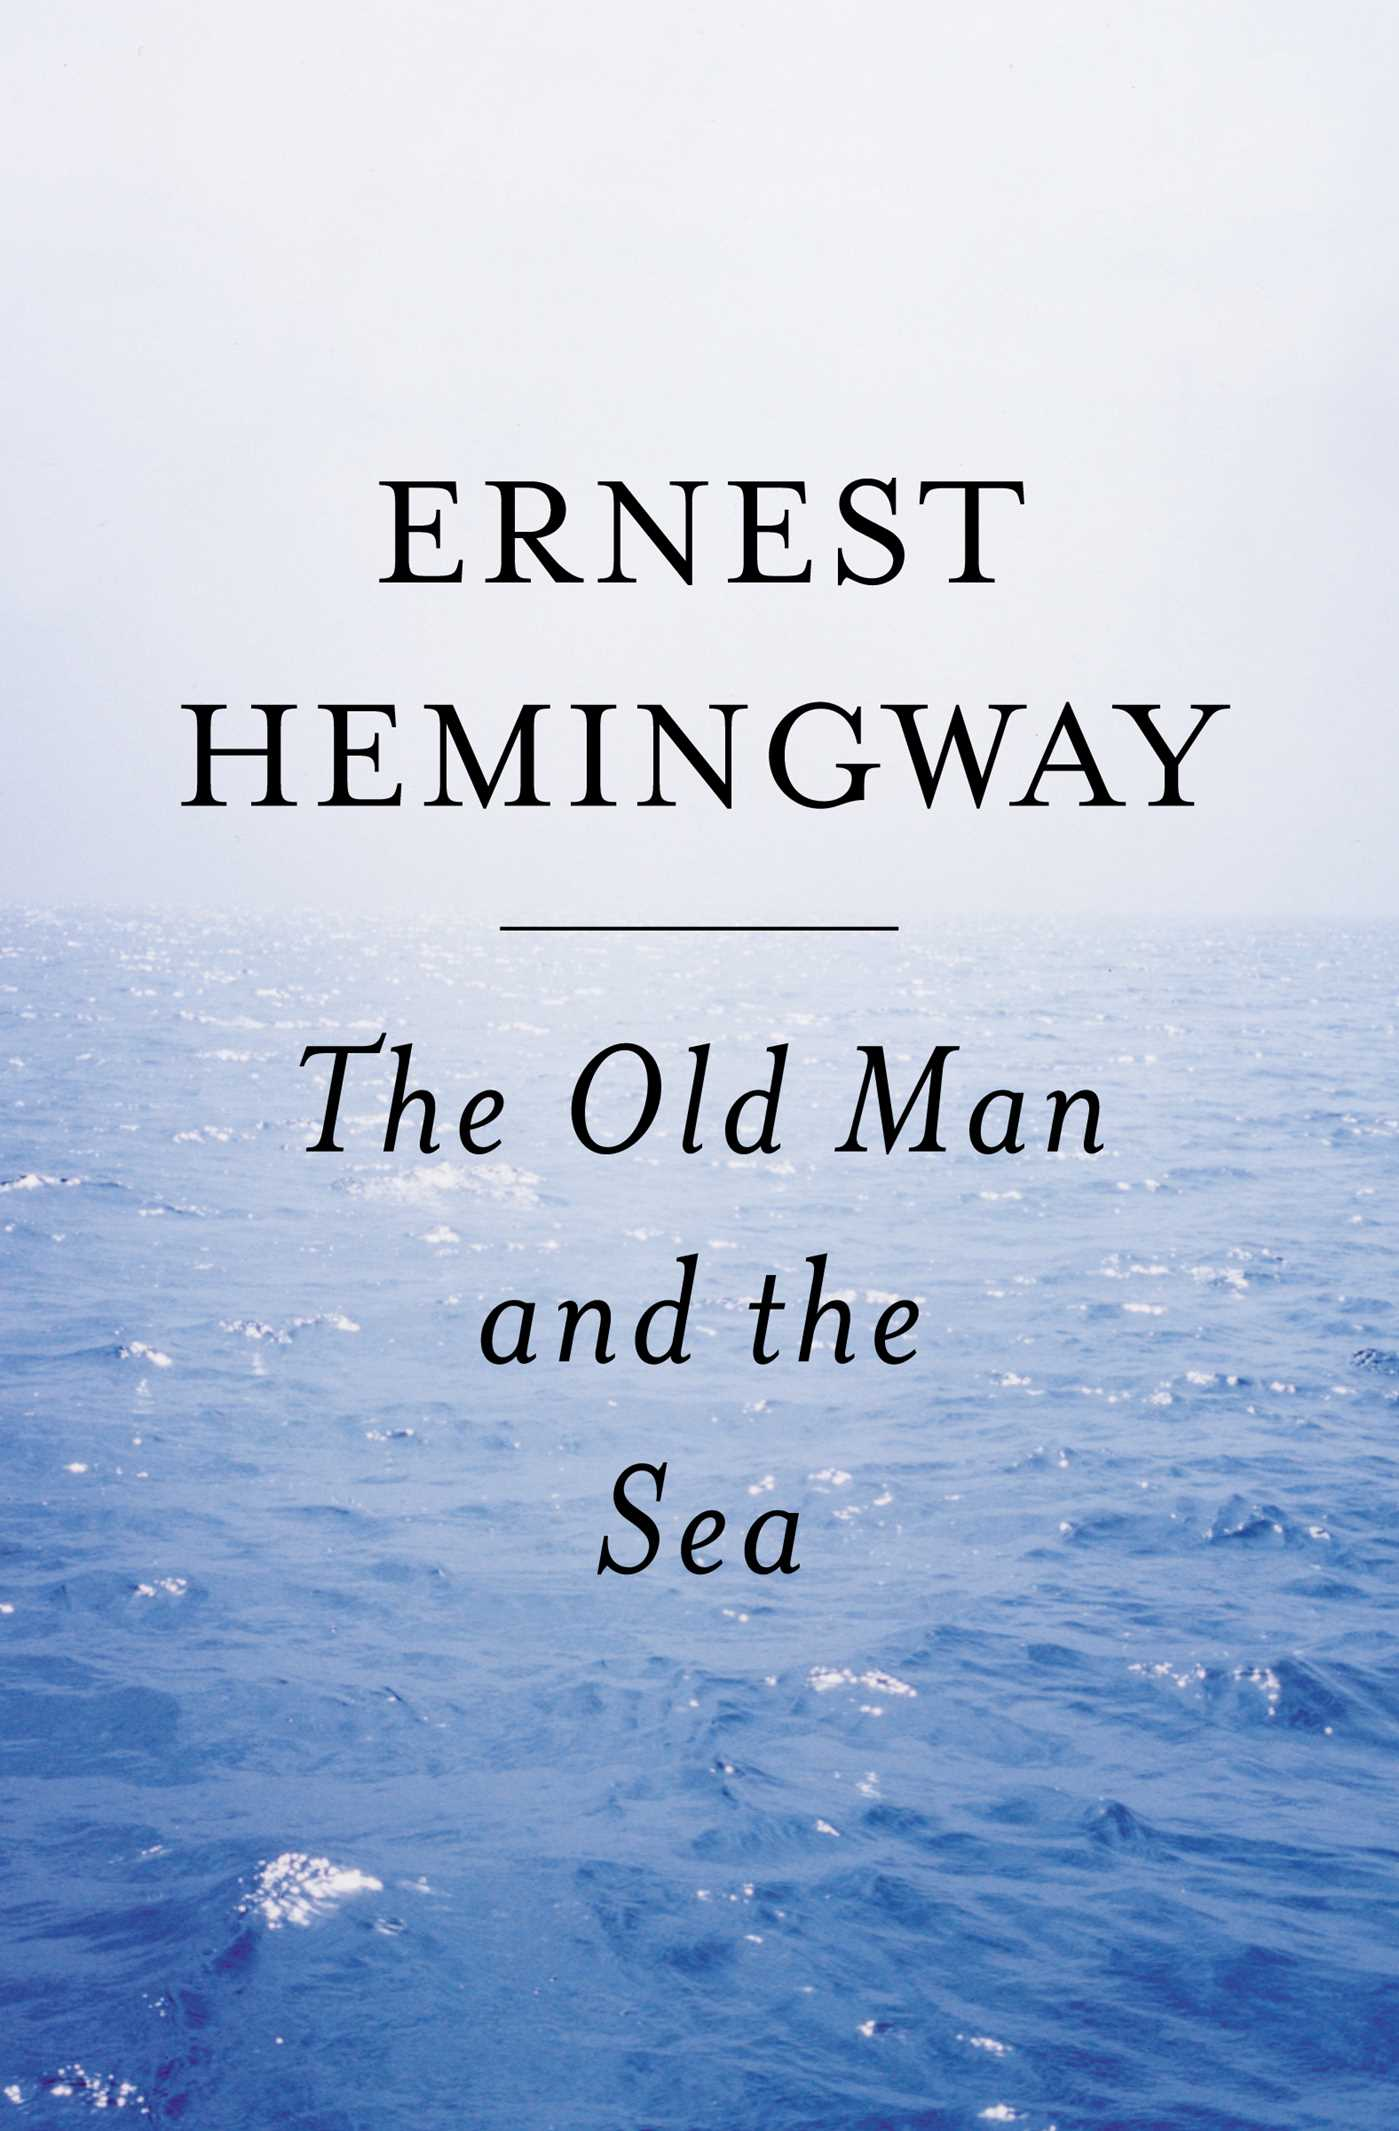 The Old Man and the Sea                               By Ernest Hemingway, 96 pages. Hemingway's Pulitzer Prize-winning novella follows fisherman Santiago as he battles alone against an enormous marlin.